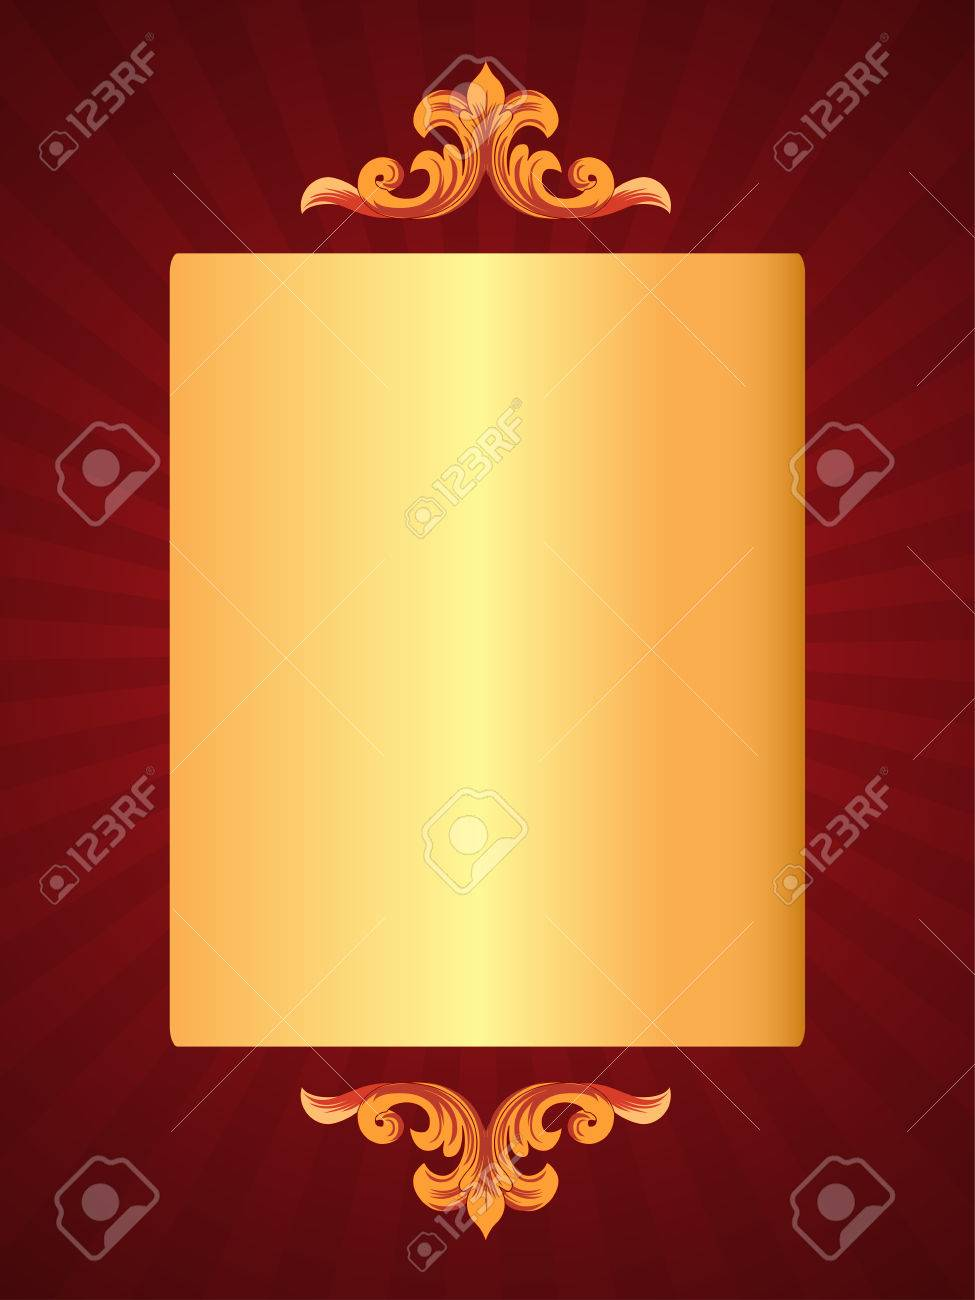 Luxury Greeting Card For Special Occasions Royalty Free Cliparts